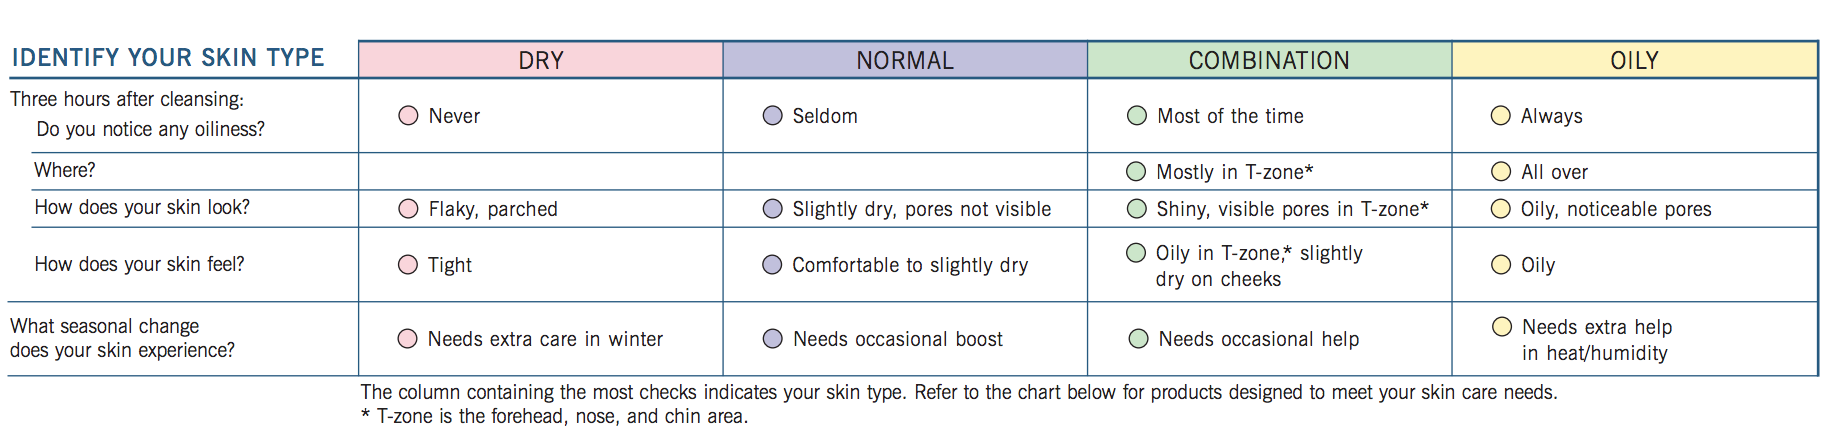 Skin Type Guide Chart